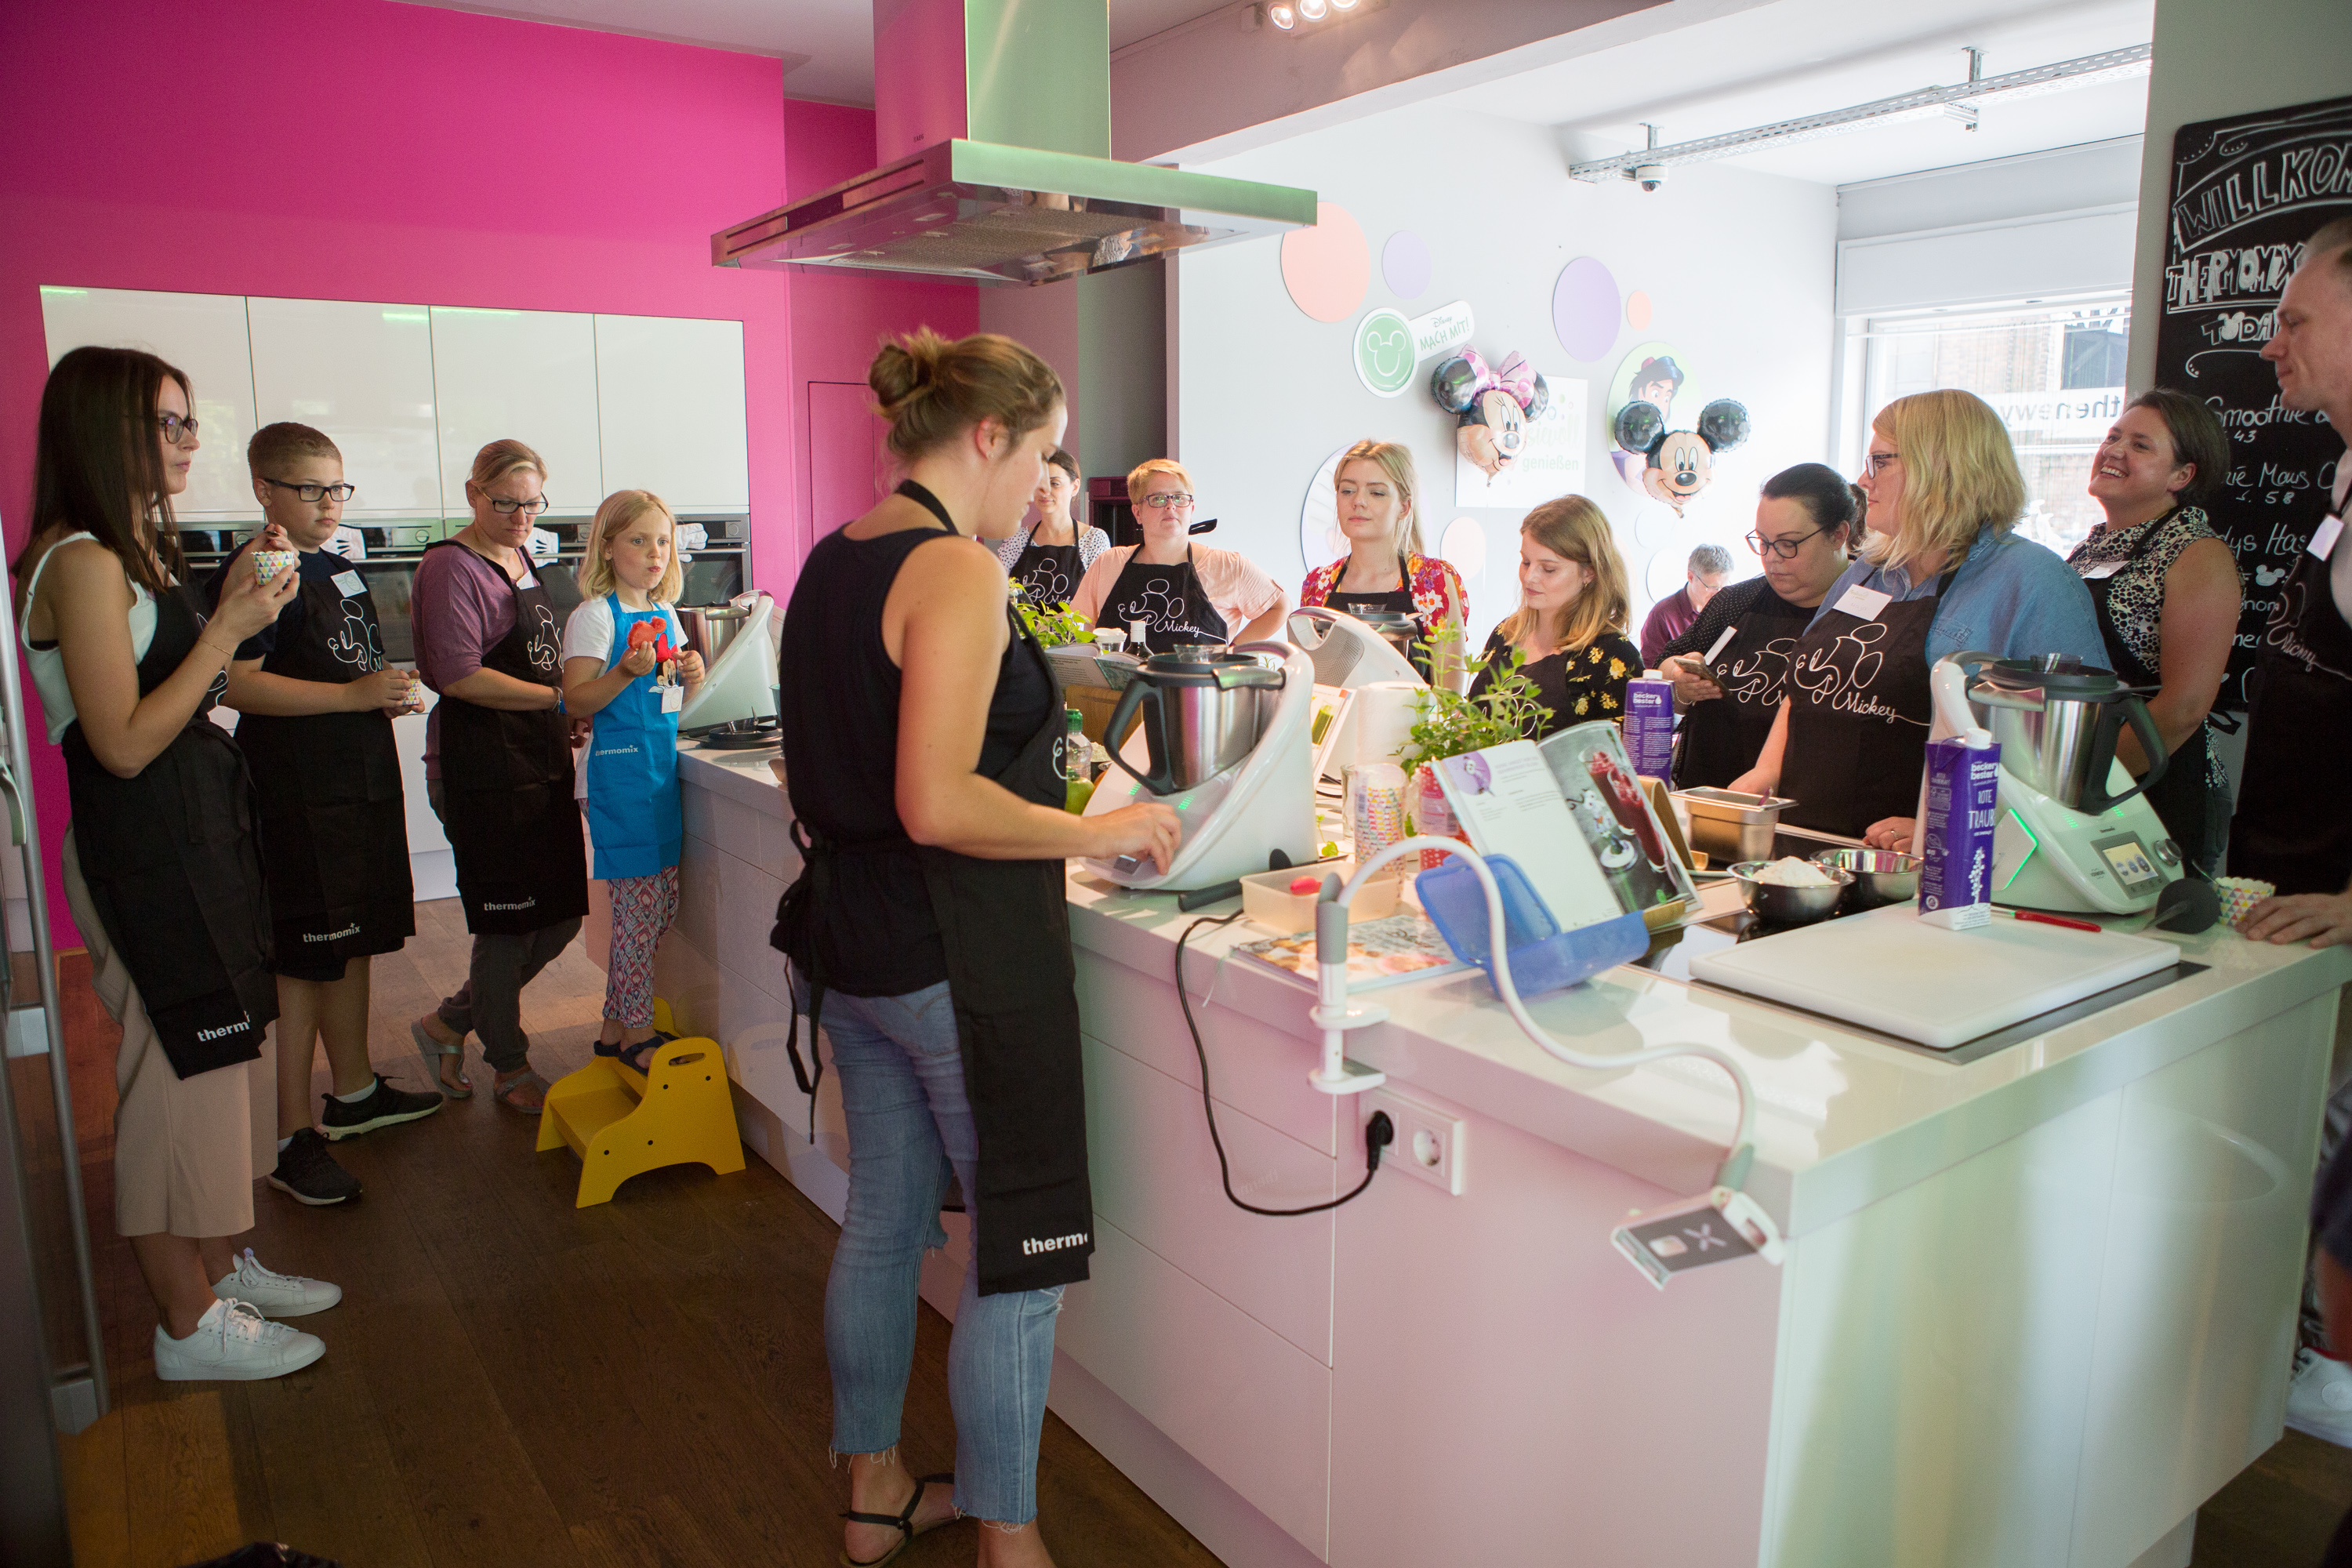 Thermomix Disney Emma packt aus hypesRus.com HYPES ARE US